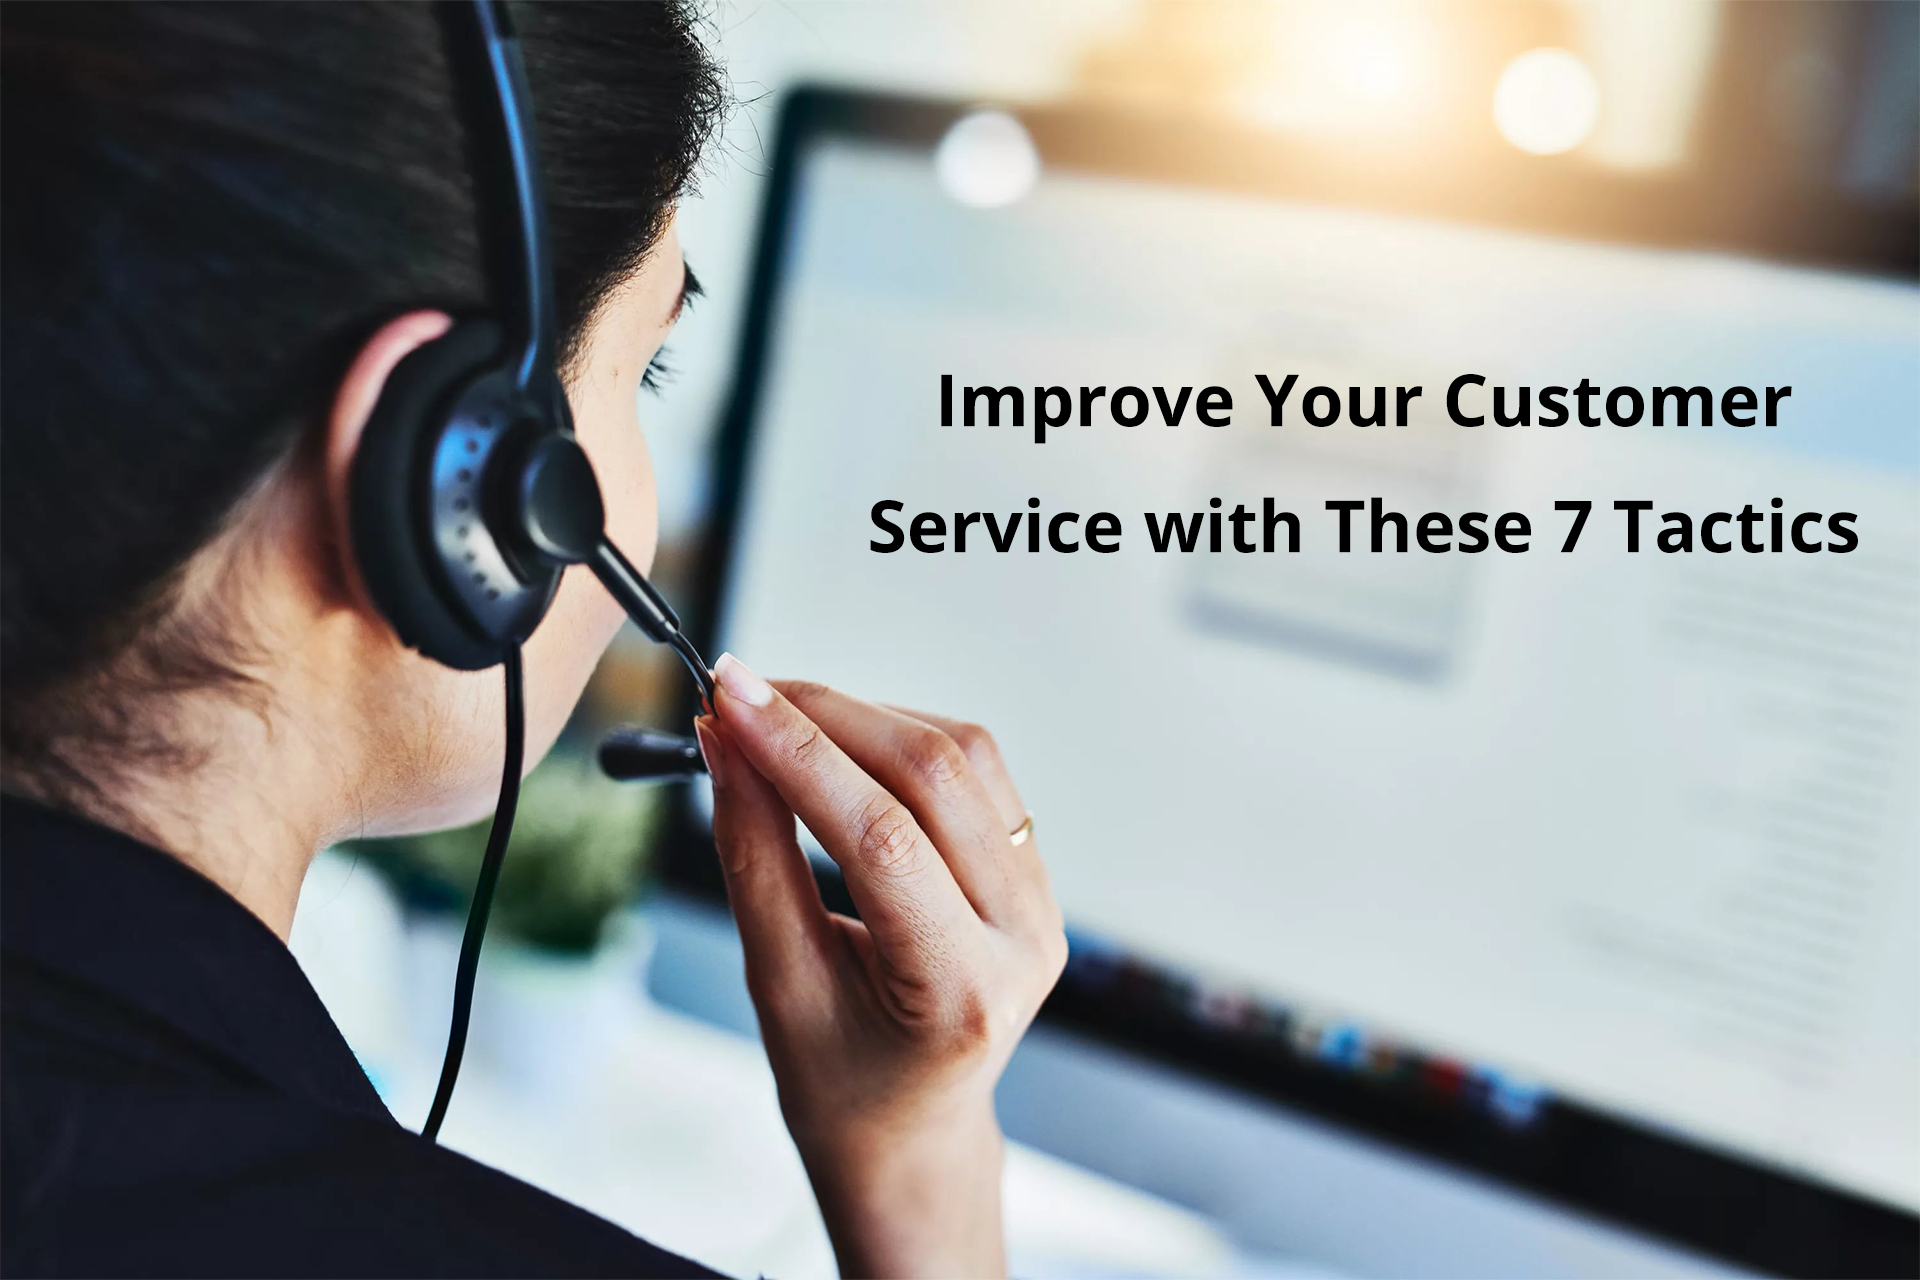 improve-your-customer-service-with-these-7-tactics